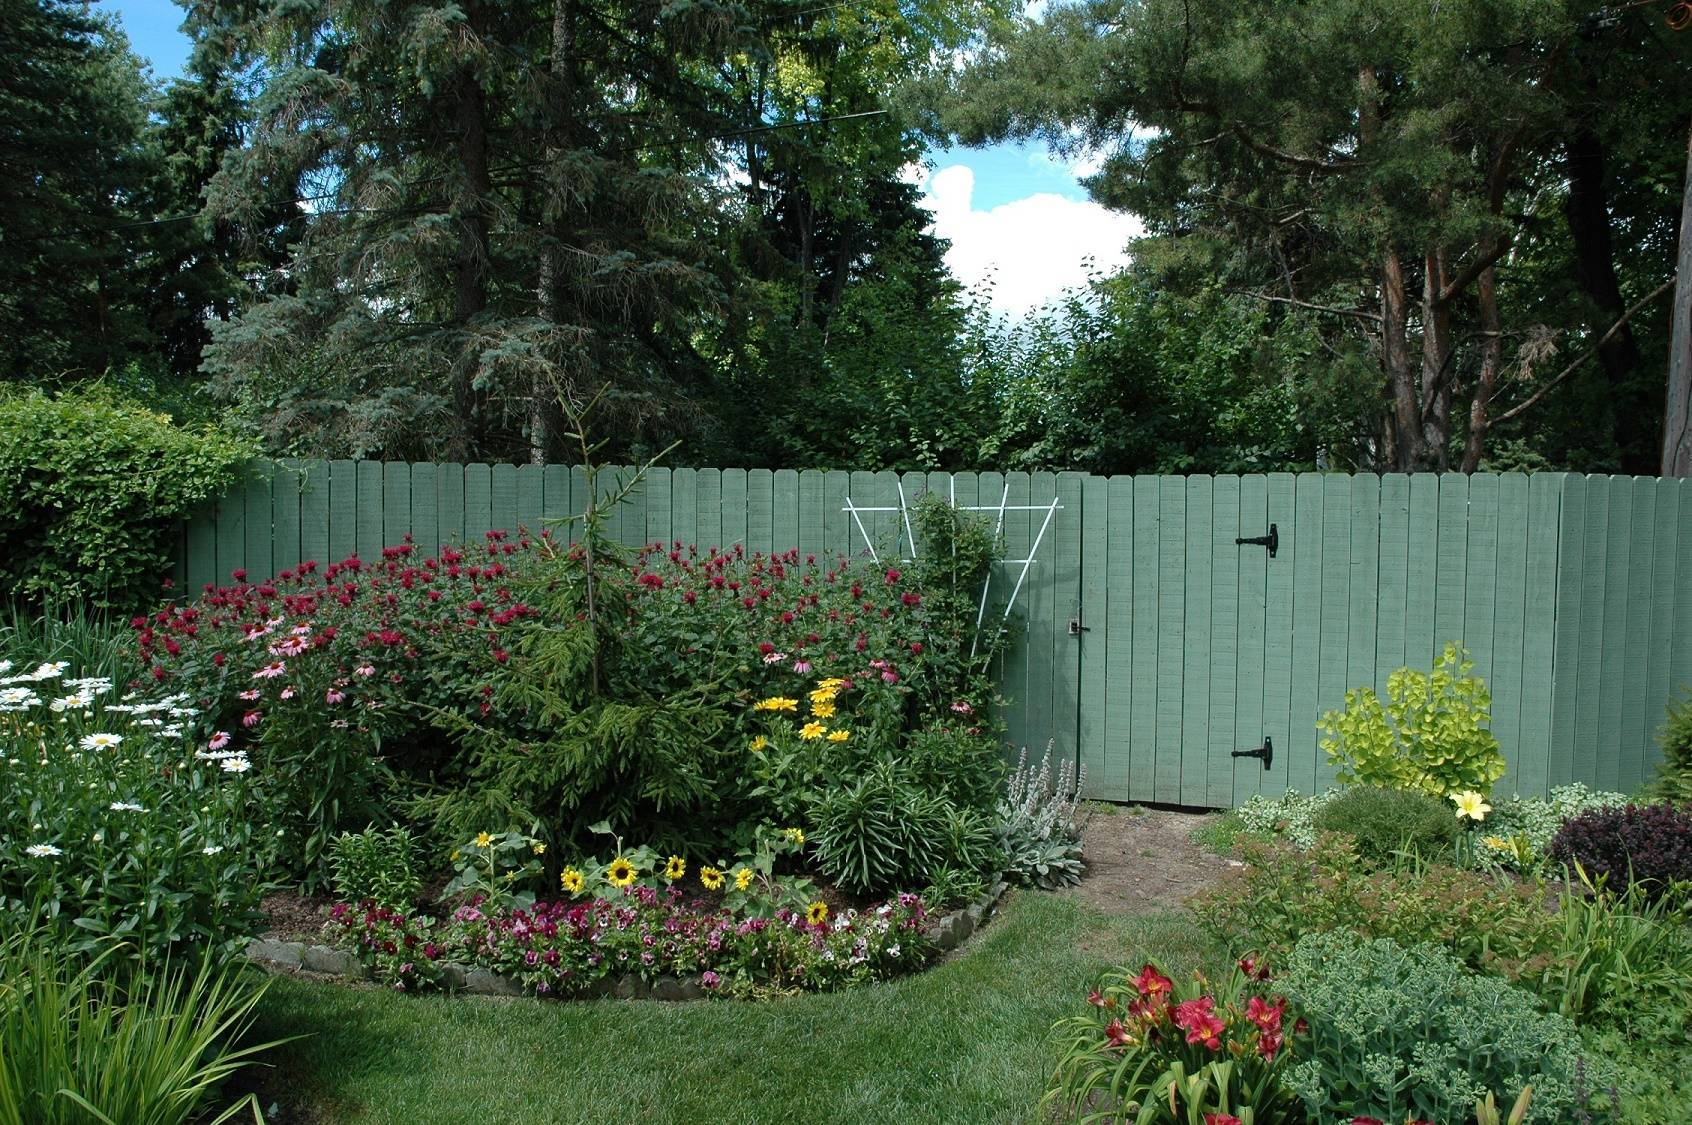 9bde3fd10297b685bff7_1_Front_Garden_with_Fence_in_front_of_hidden_compost_area.jpg